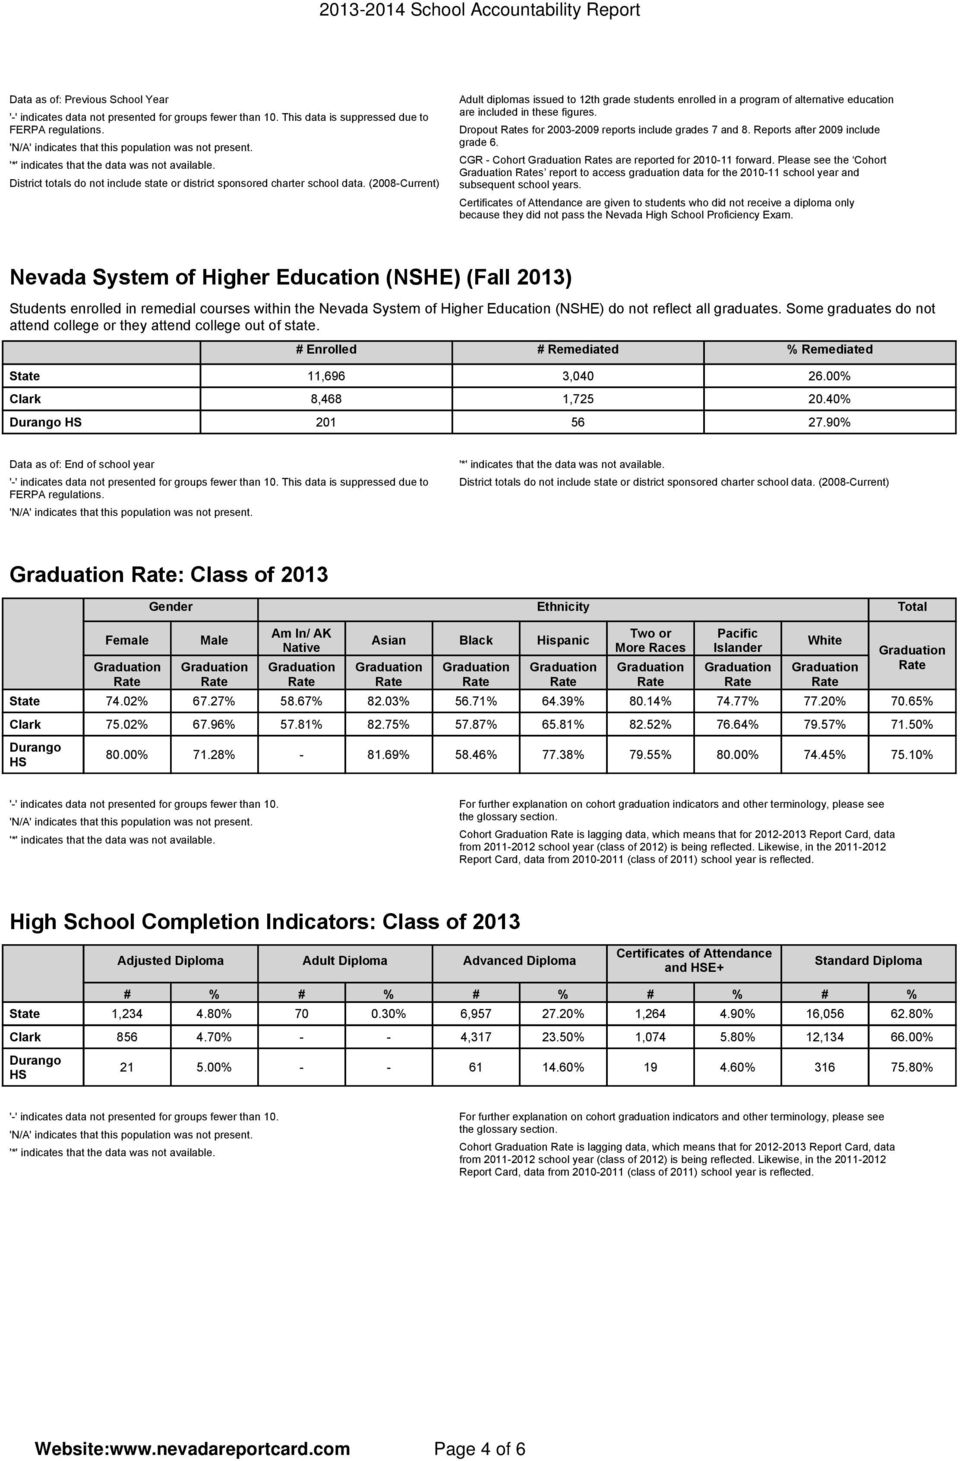 Please see the Cohort s report to access graduation data for the 2010-11 school year and subsequent school years.